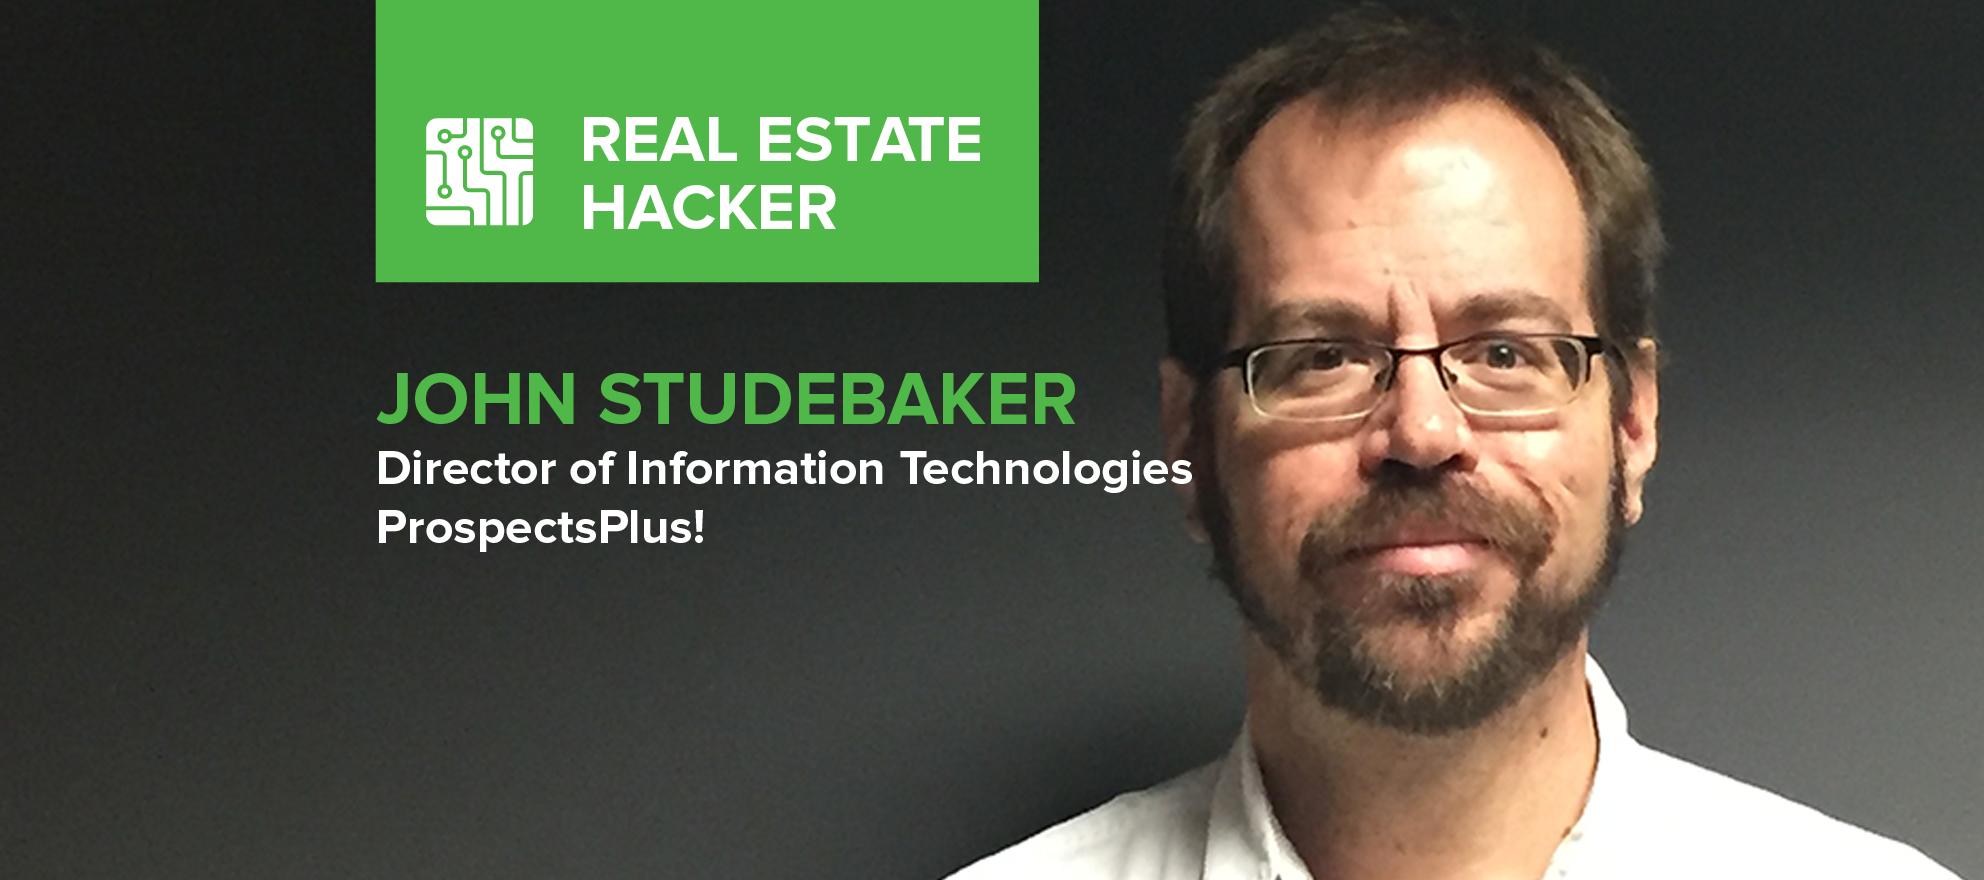 John Studebaker: 'Technology is one of those areas where the best doesn't always win'